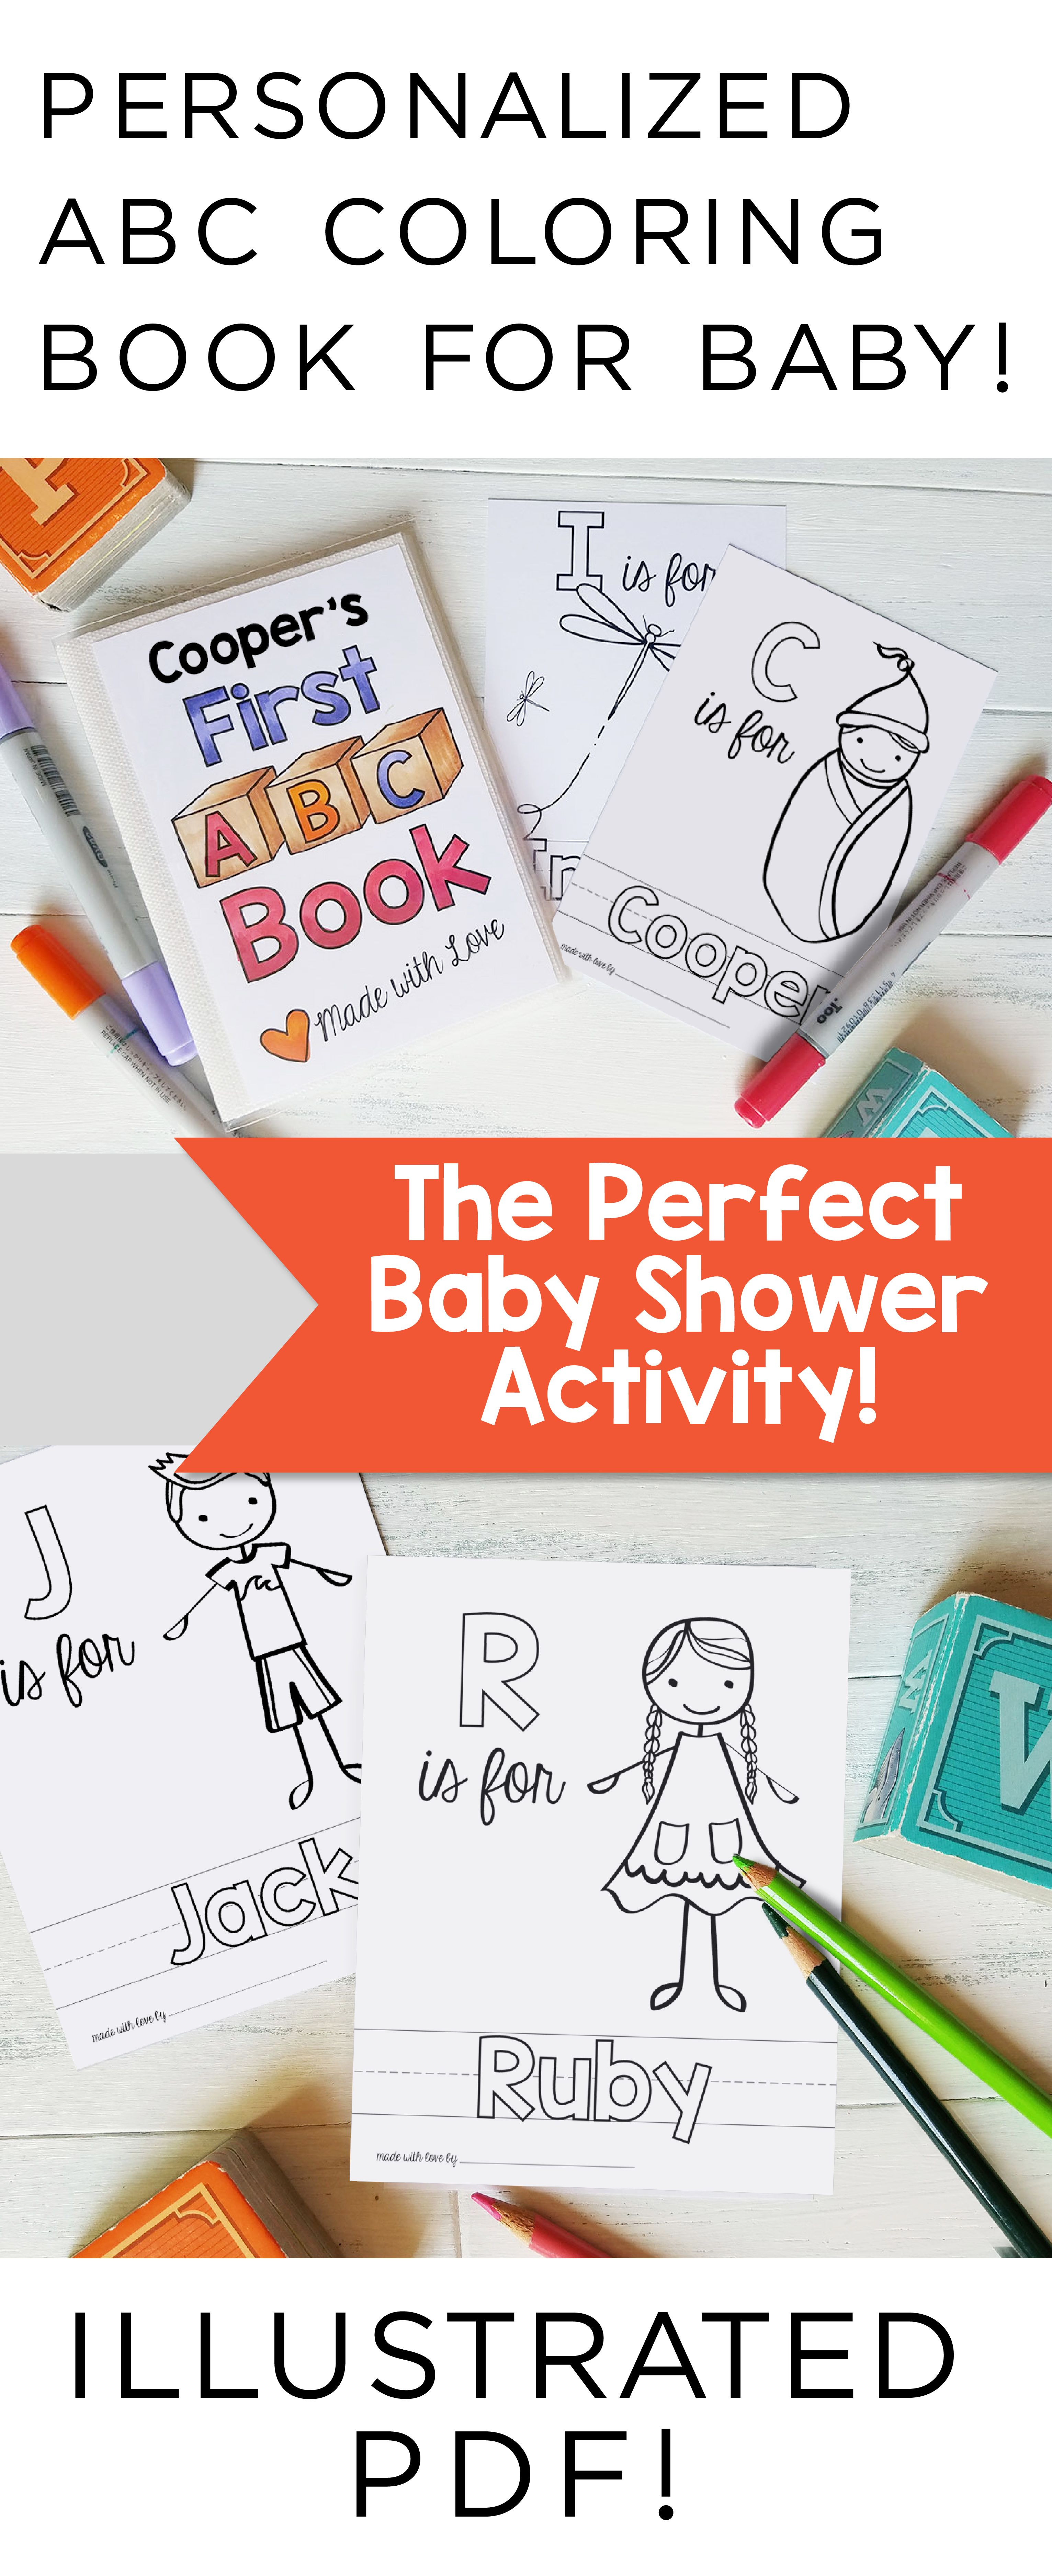 photo relating to Printable Abc Book Template called ABC E-book Template for a Good youngster shower match that is